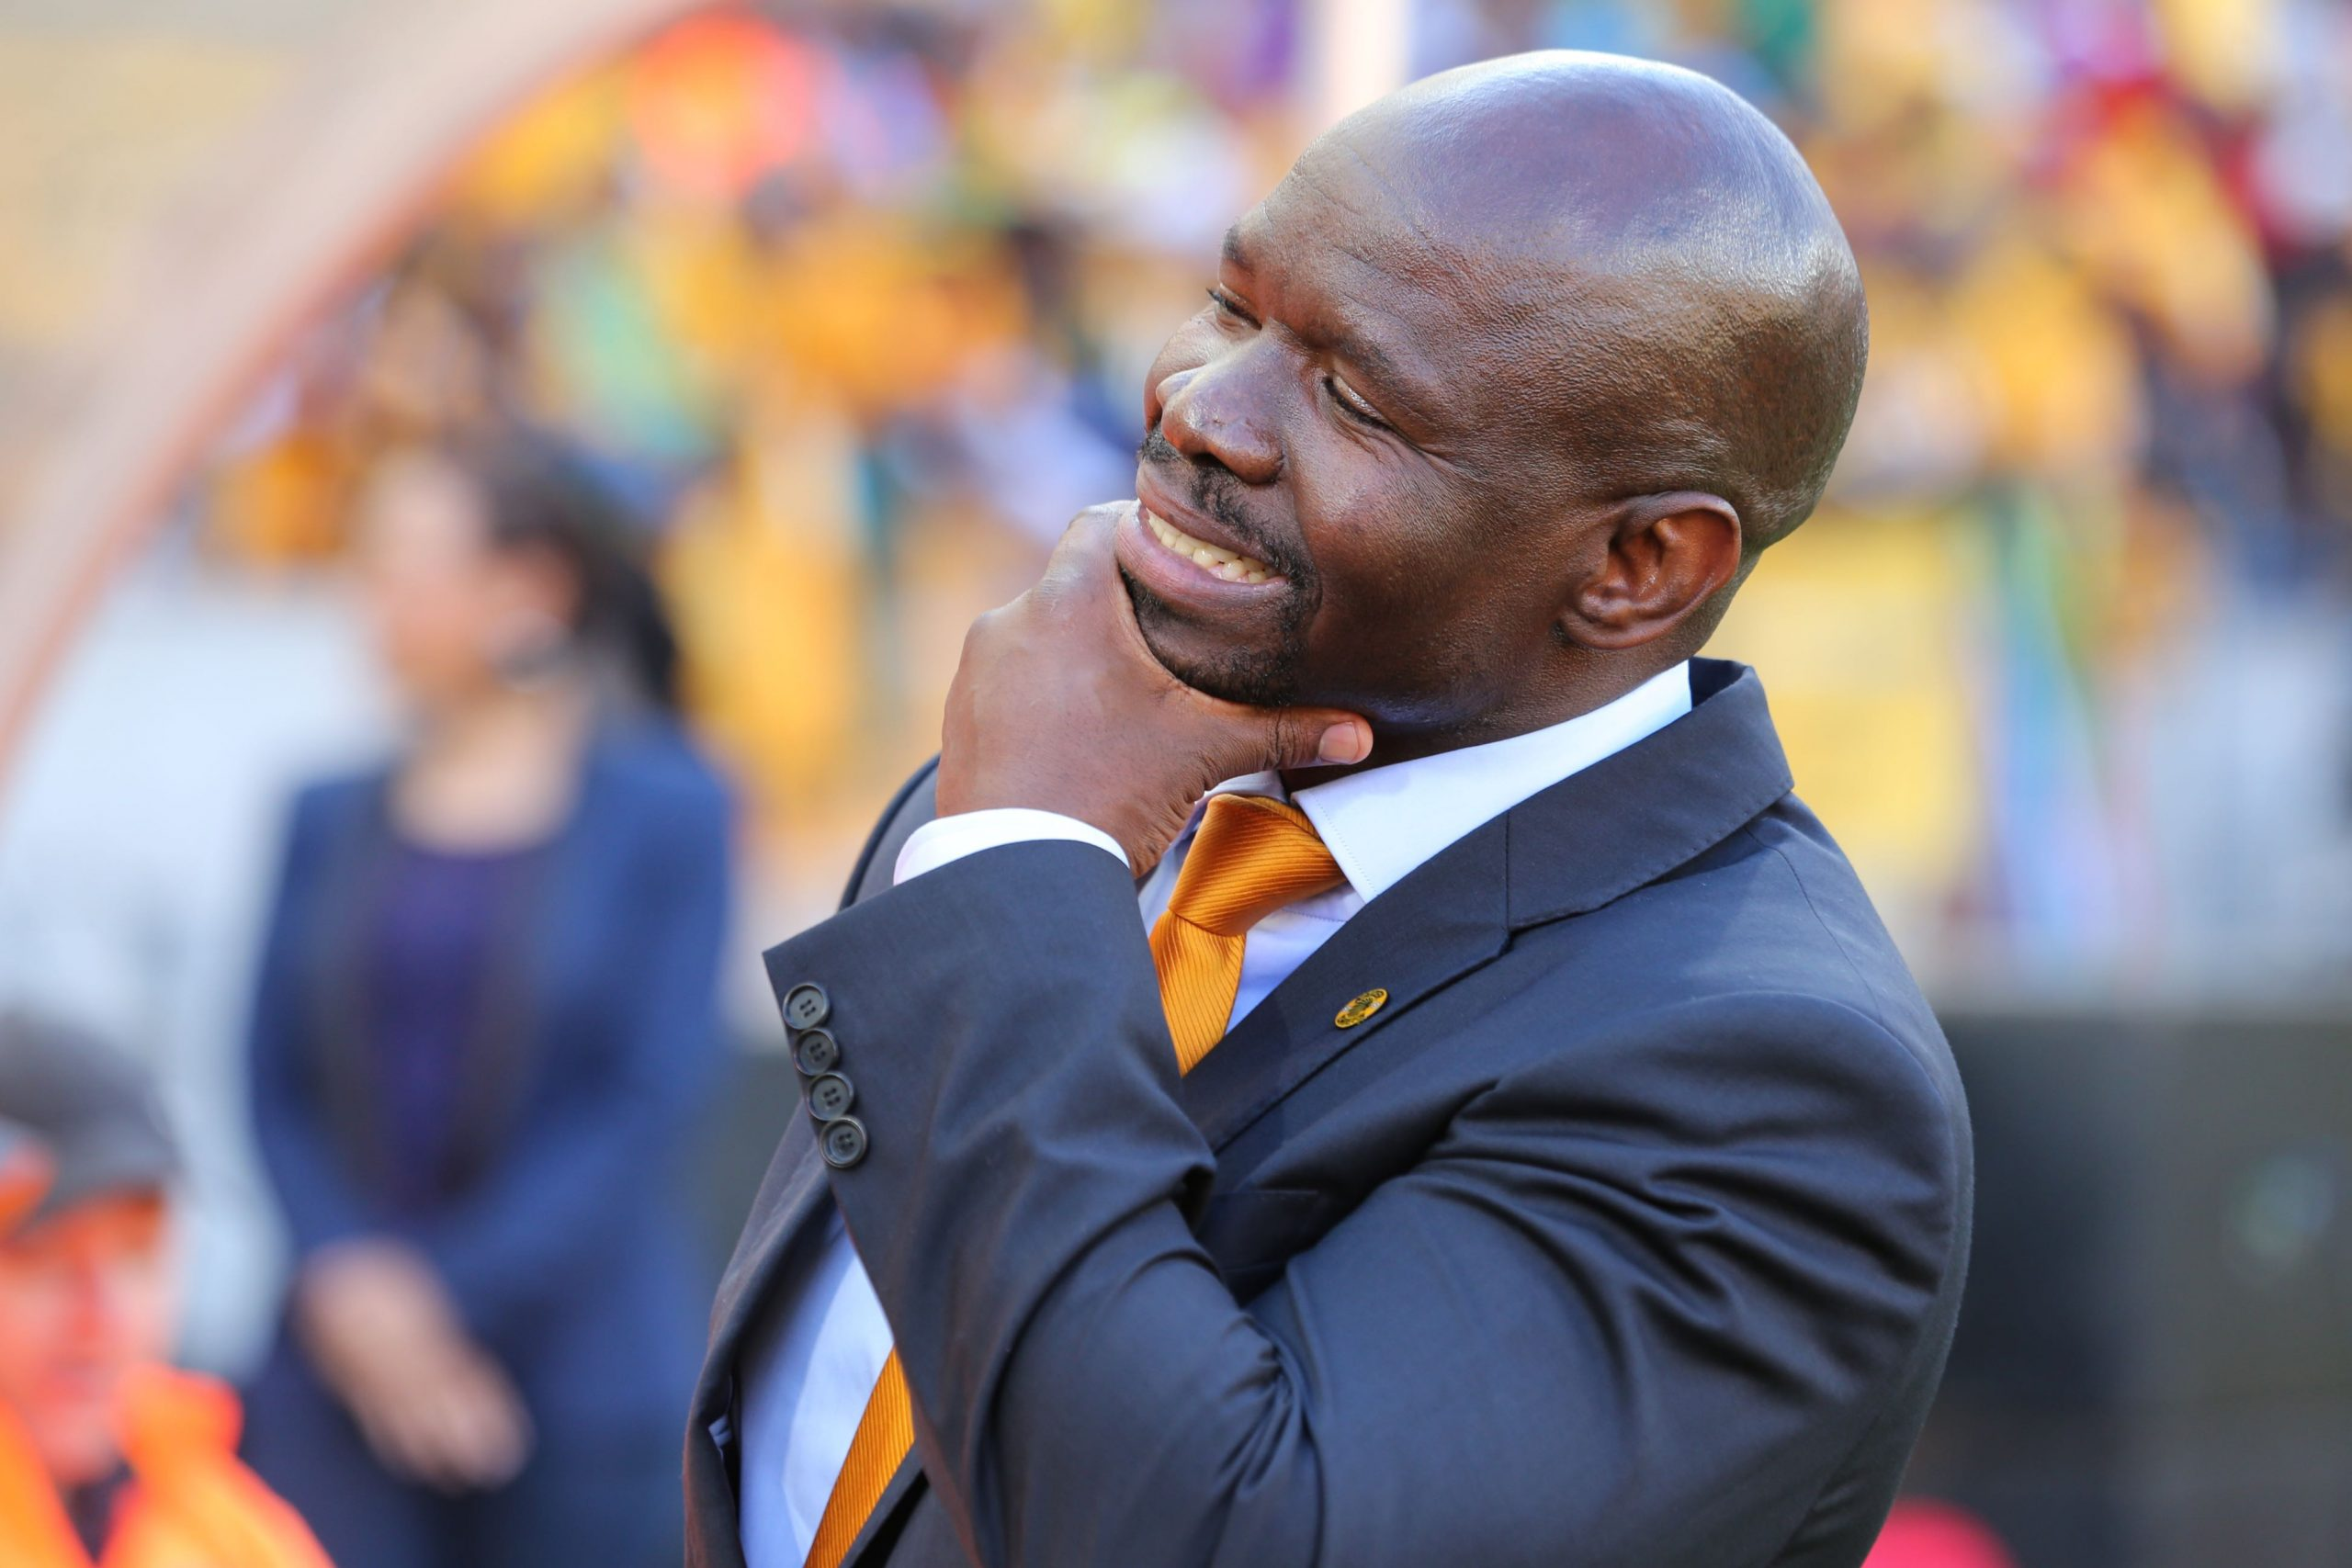 Steve Komphela tells us the trough about Ernst Middendorp